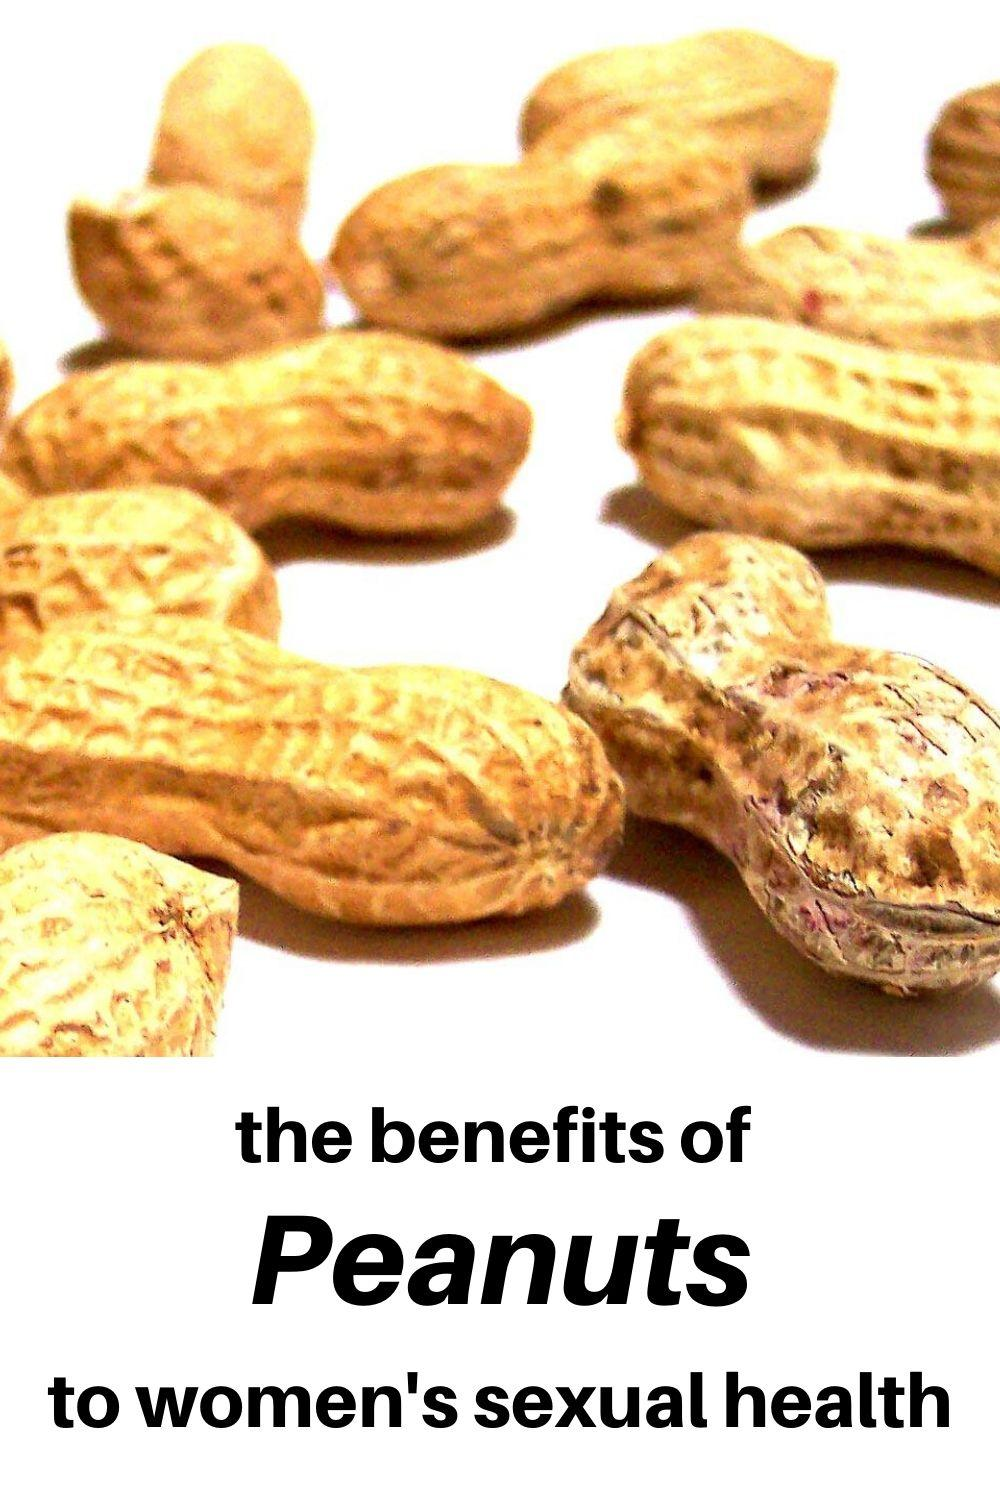 The health benefits of peanuts for women